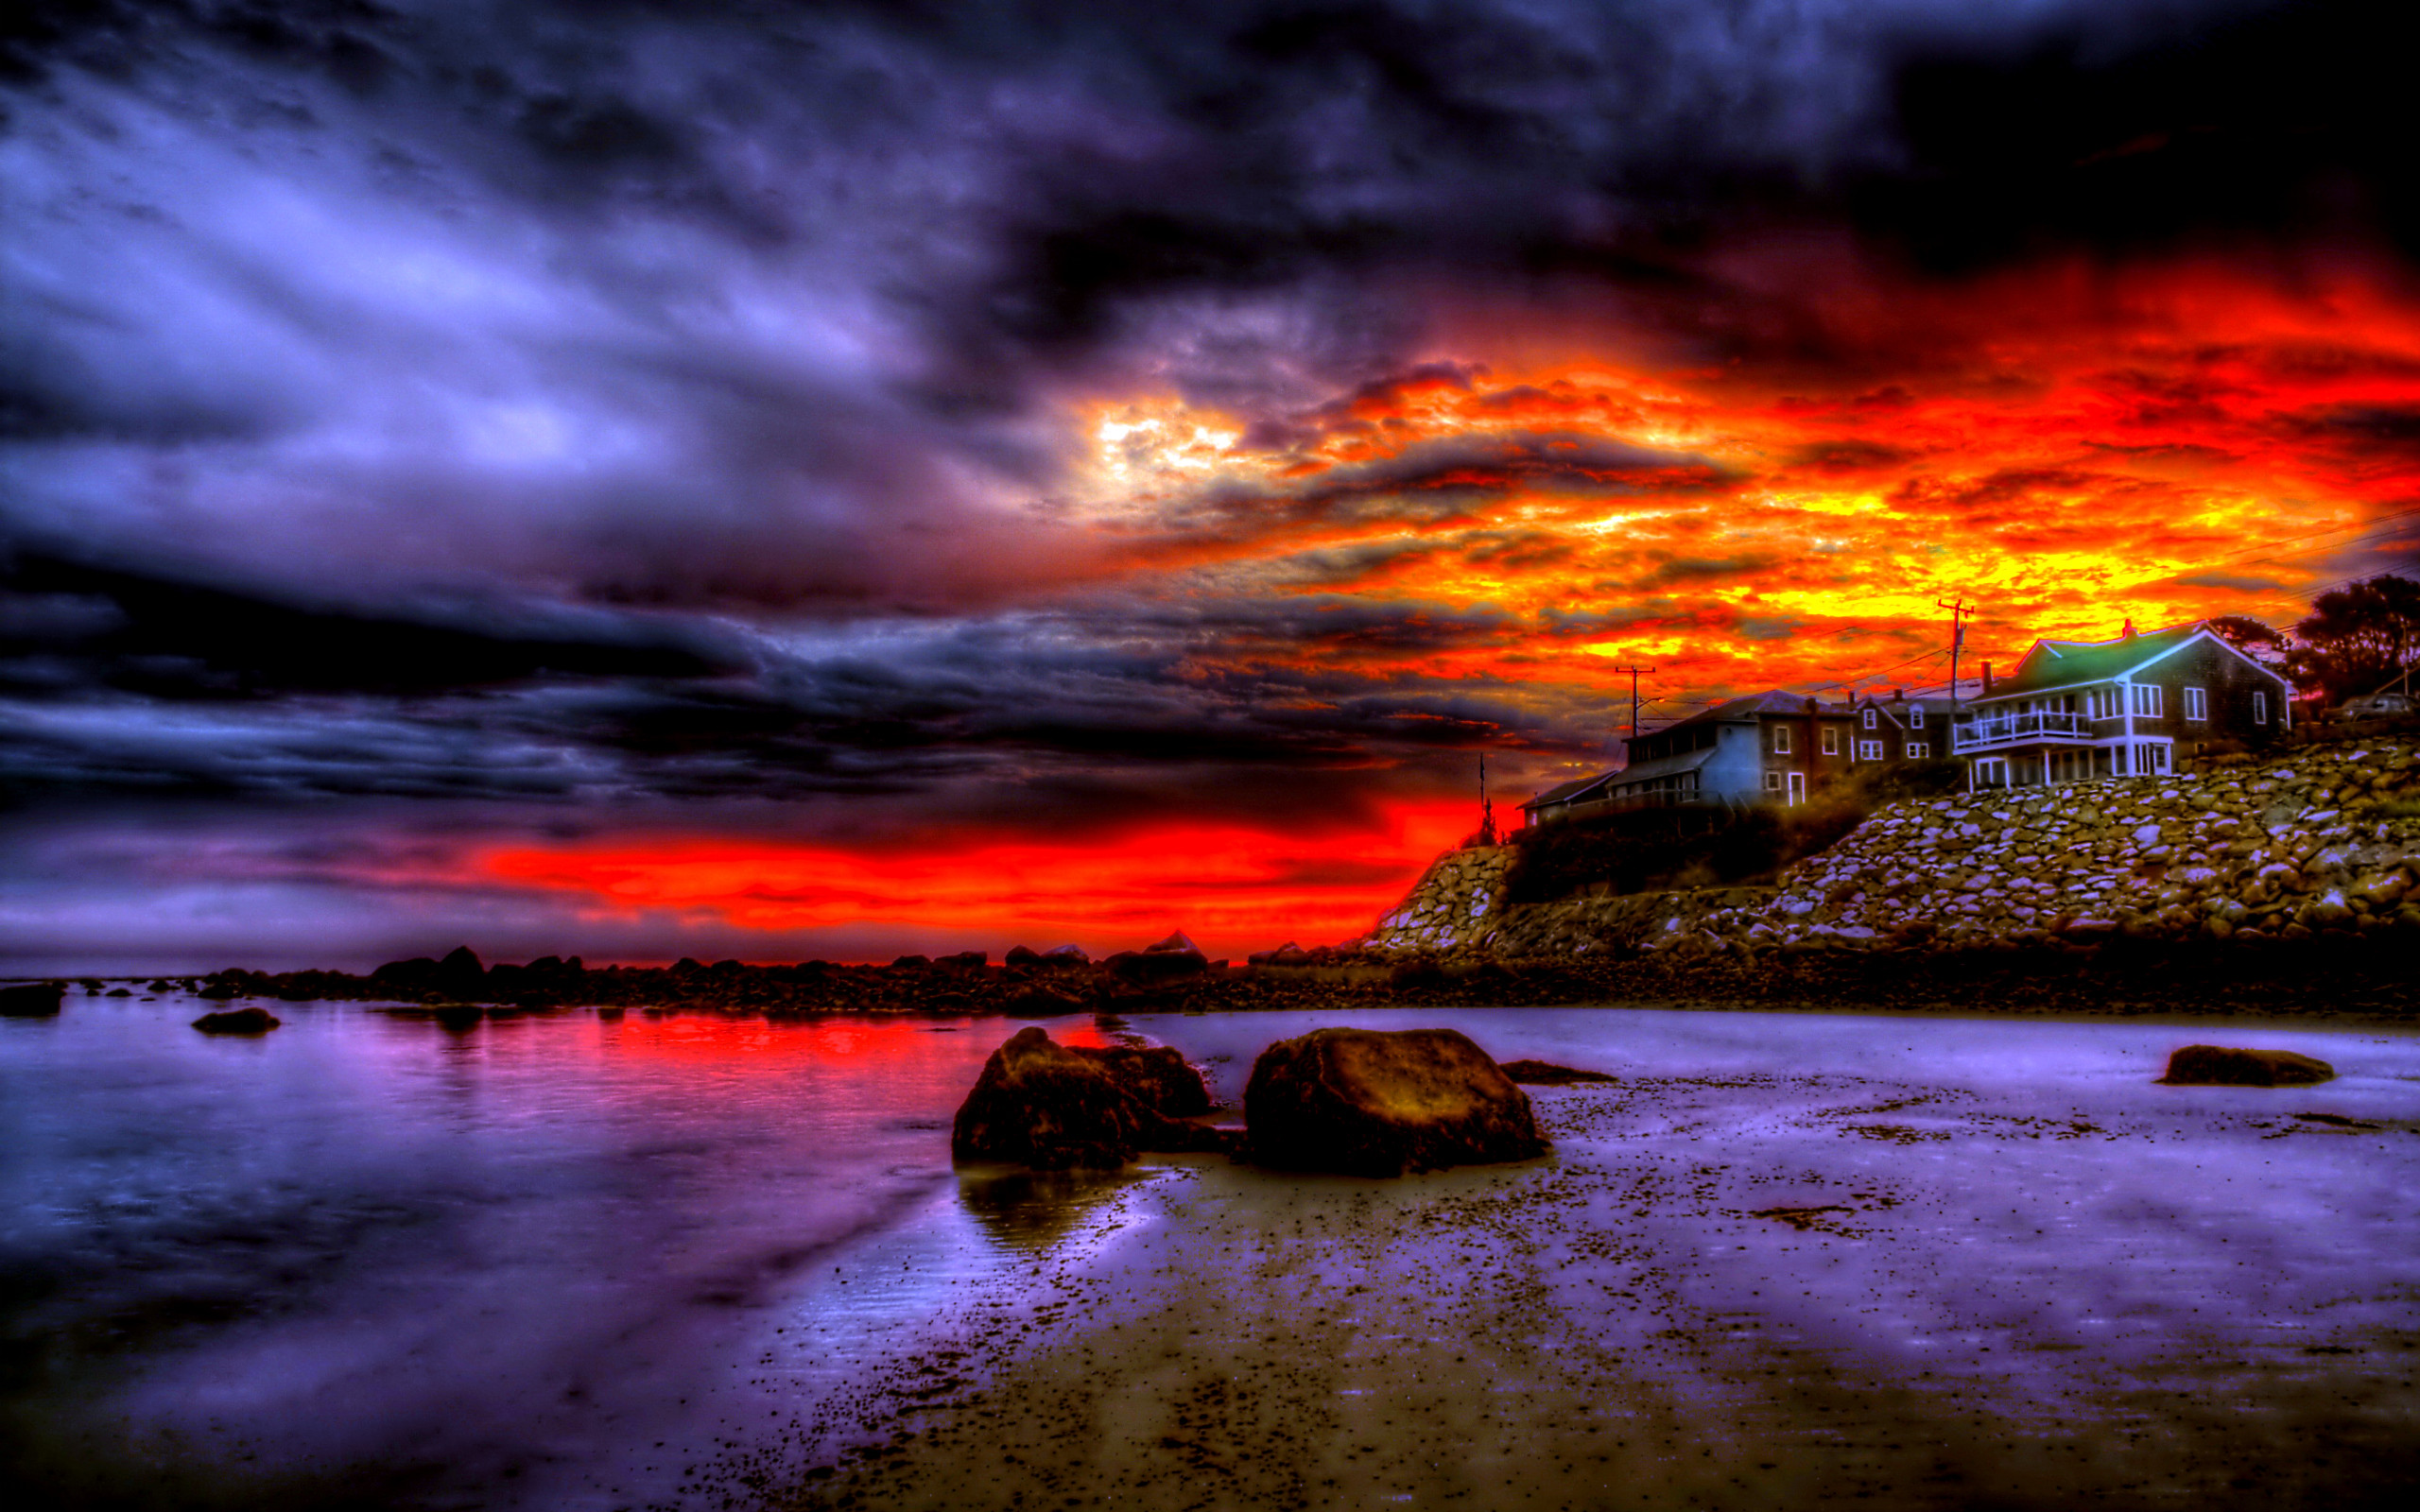 Beaches: Beautiful Sky Colorful Light Ocean Peaceful Building Stormy Waves  Amazing Sea Sunset Storm Colors Splendor Sand Nature Houses Reflection  Beauty …